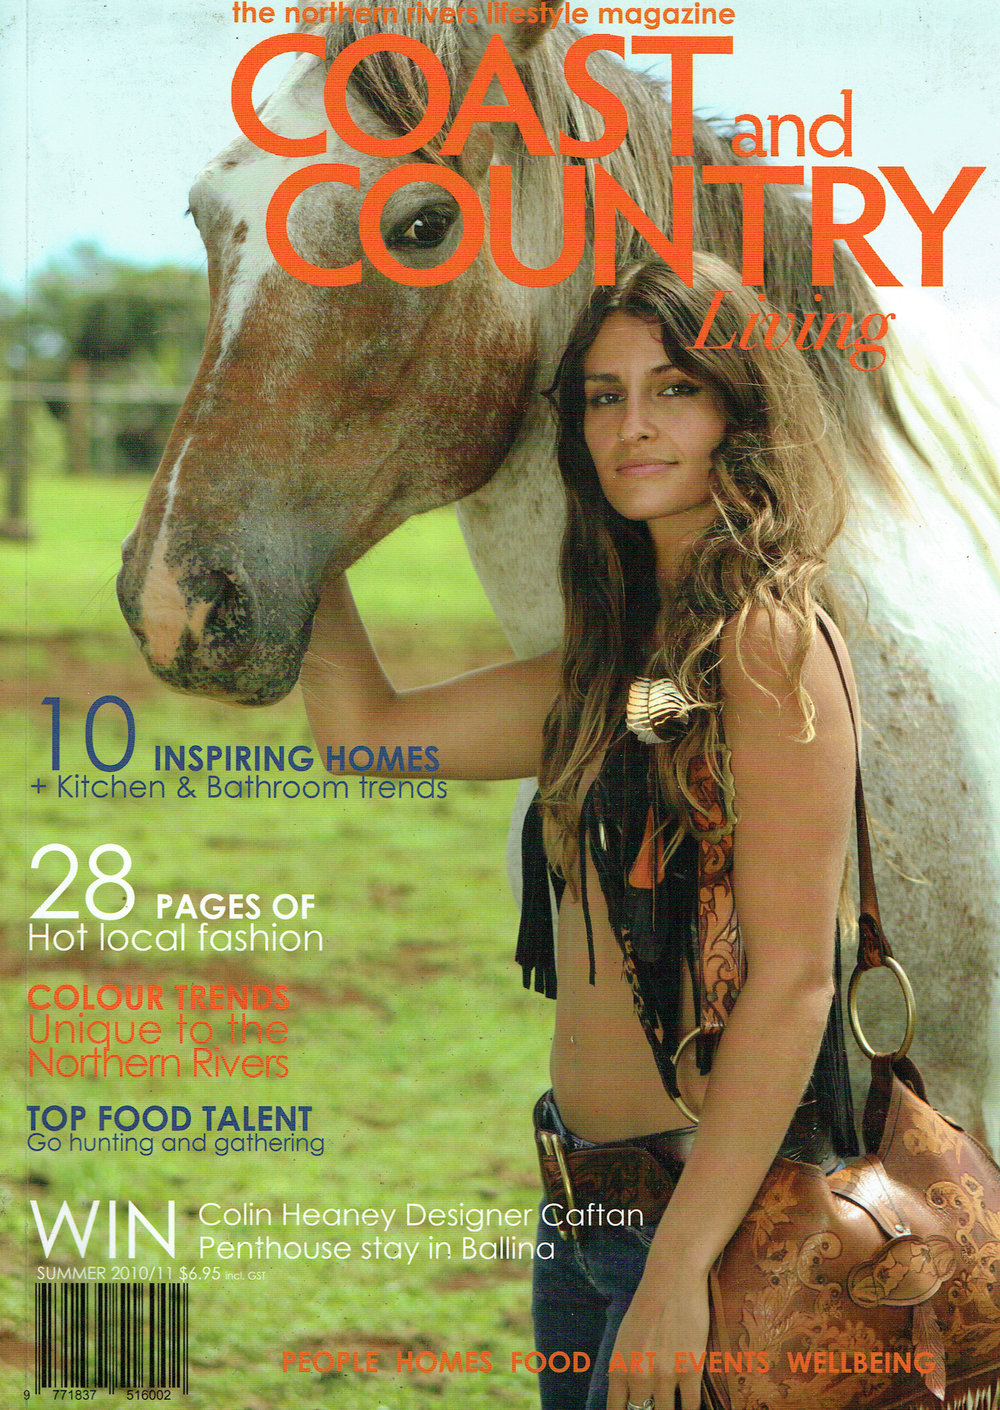 Buffalo Girl featured on the cover of Coast and Country Living magazine.